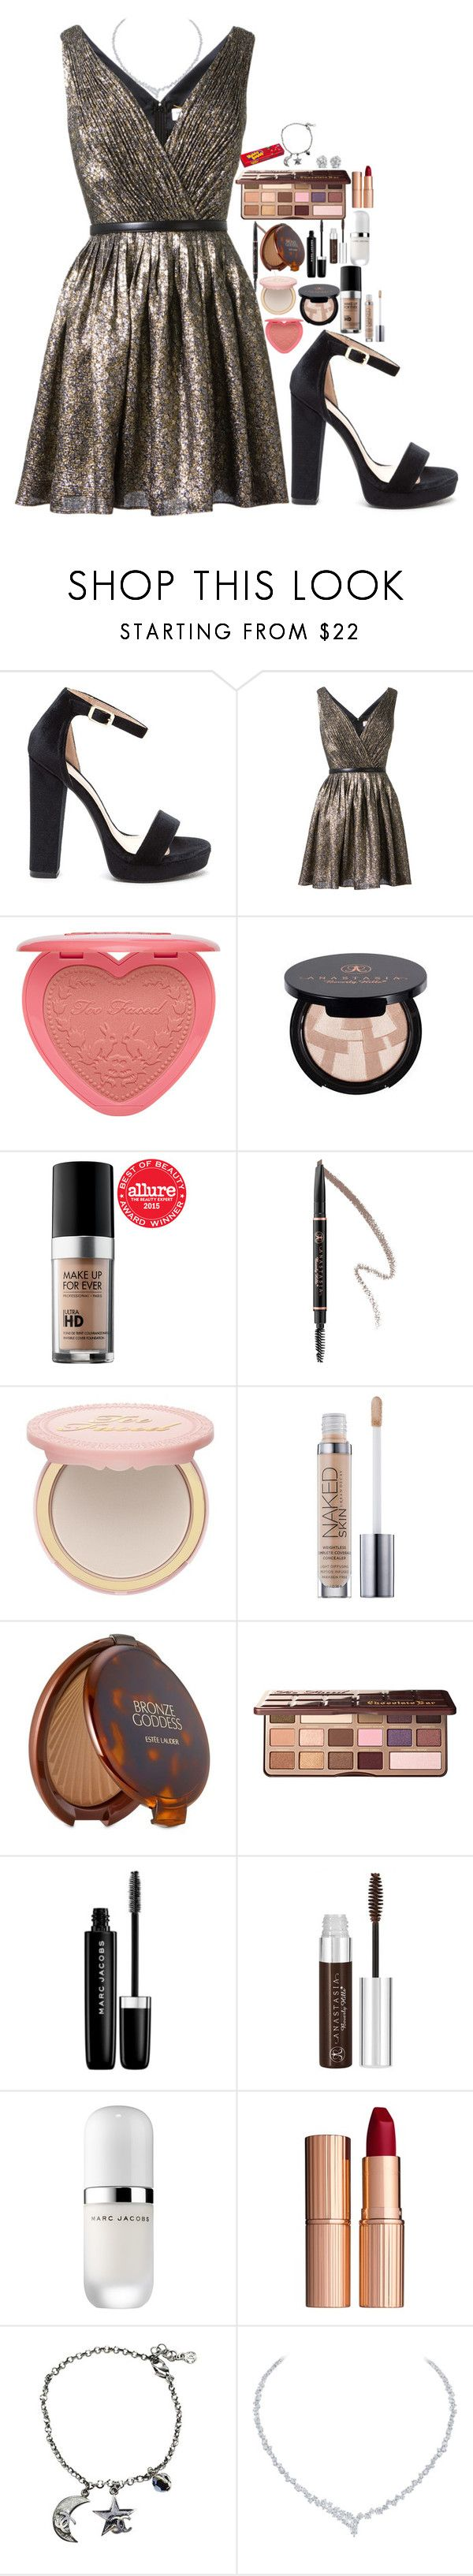 """""""Sin título #821"""" by hpf1102 ❤ liked on Polyvore featuring Yves Saint Laurent, Anastasia Beverly Hills, MAKE UP FOR EVER, Too Faced Cosmetics, Estée Lauder, Marc Jacobs, Charlotte Tilbury, Chanel and Harry Winston"""